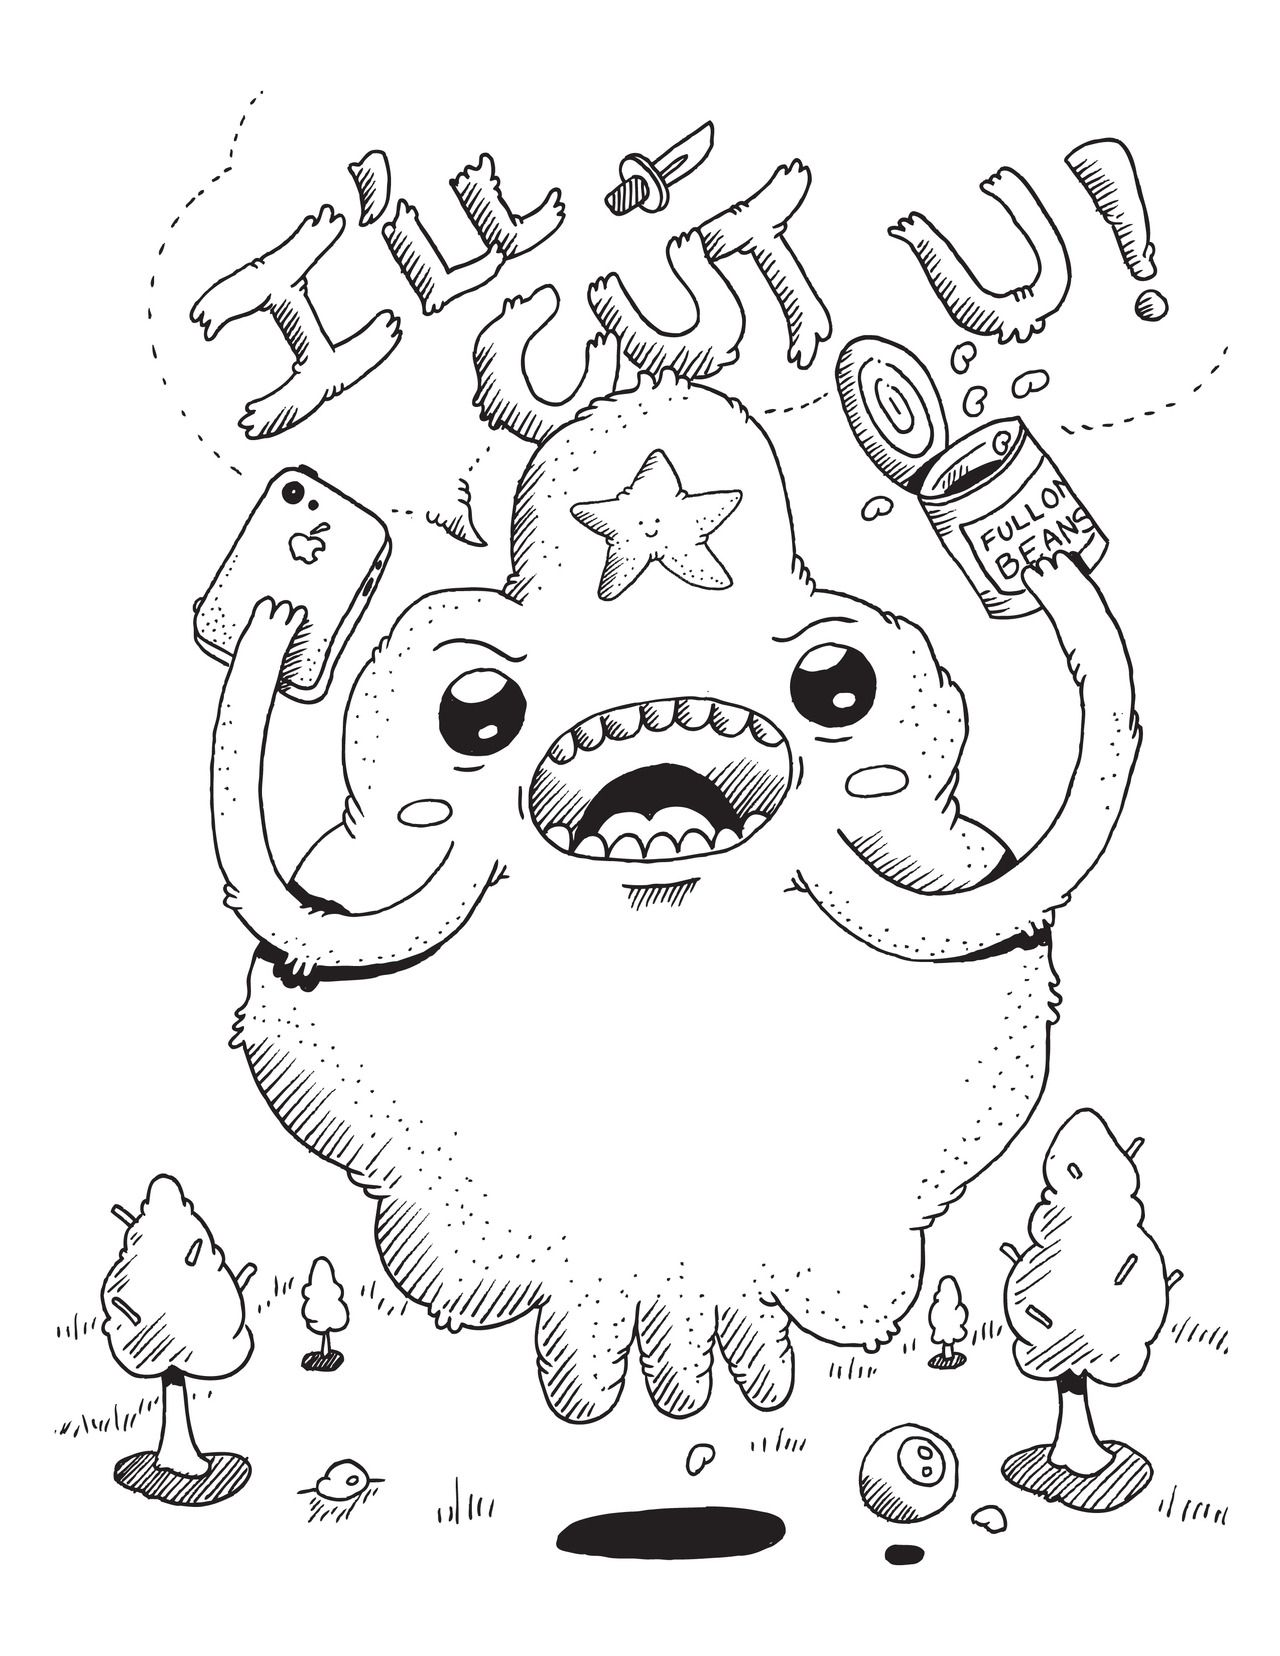 LSP coloring page. Adventure Time. | Rad | Adventure Time with Finn ...